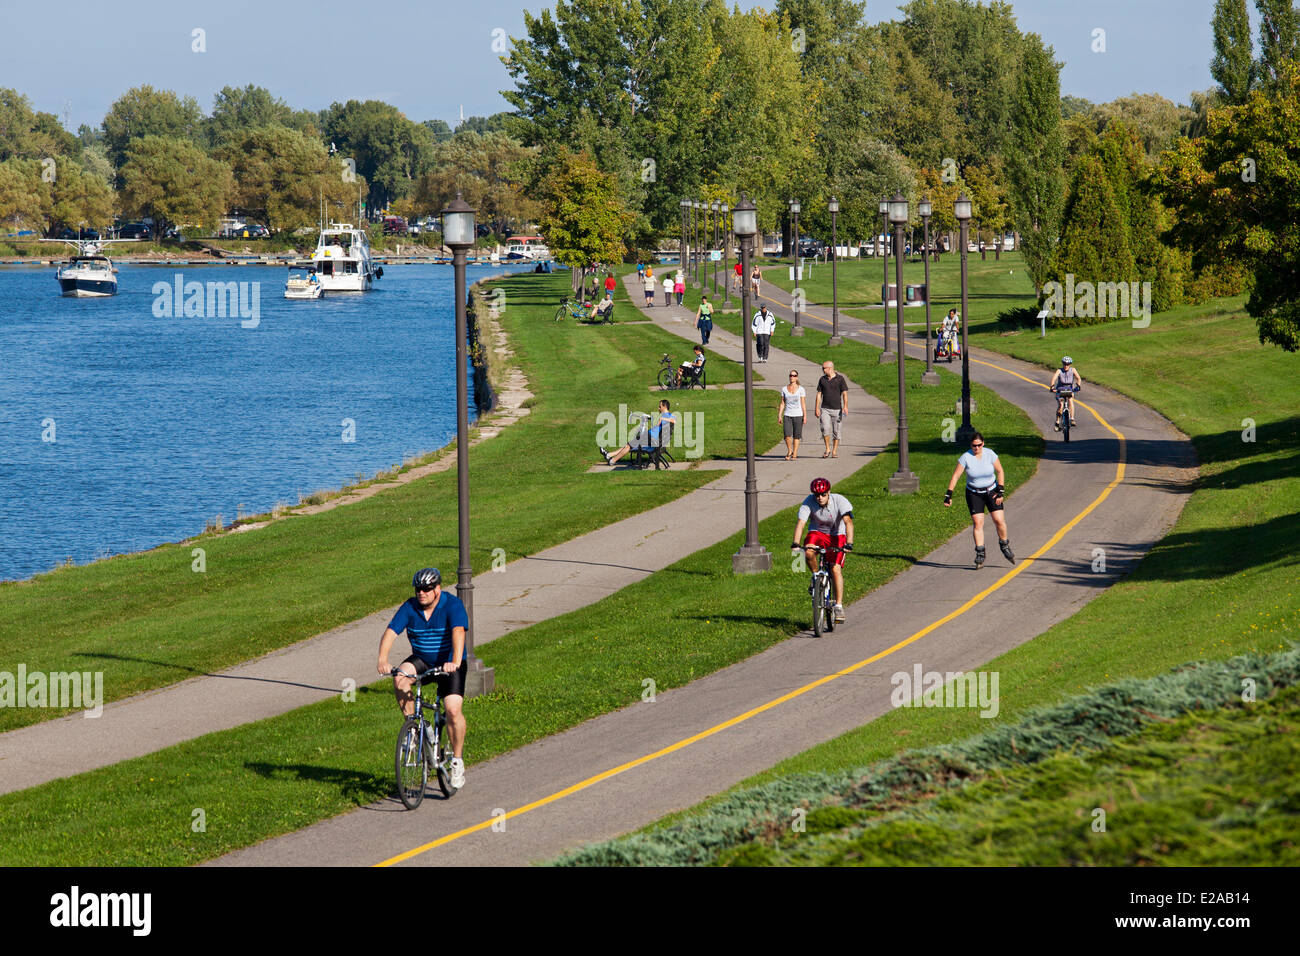 Canada, Quebec Province, Montreal, Lachine, Rene Levesque Park, bicycle and pedestrian path alongside the canal Stock Photo